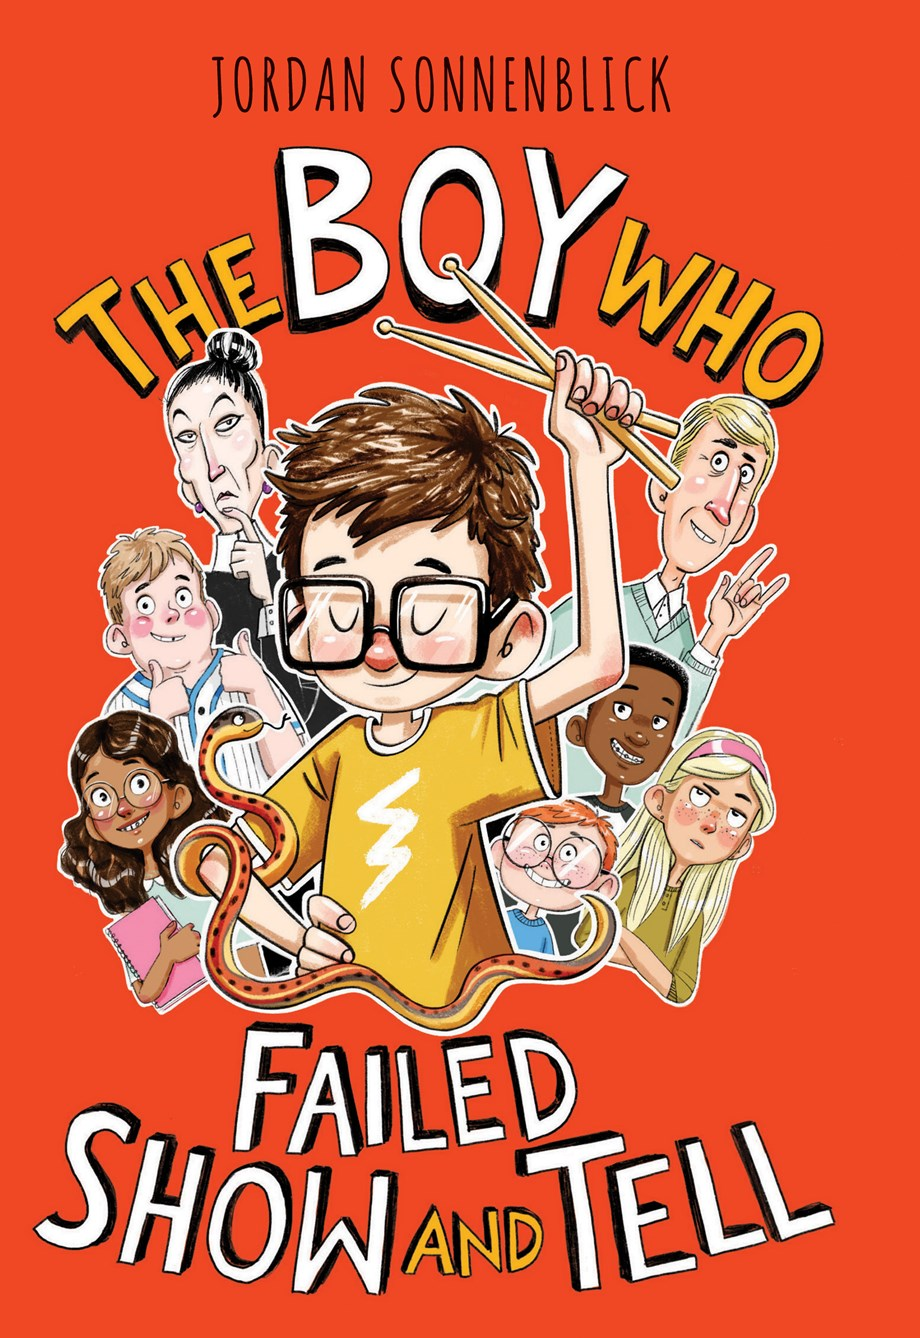 The Boy Who Failed Show and Tell by Jordan Sonnenblick